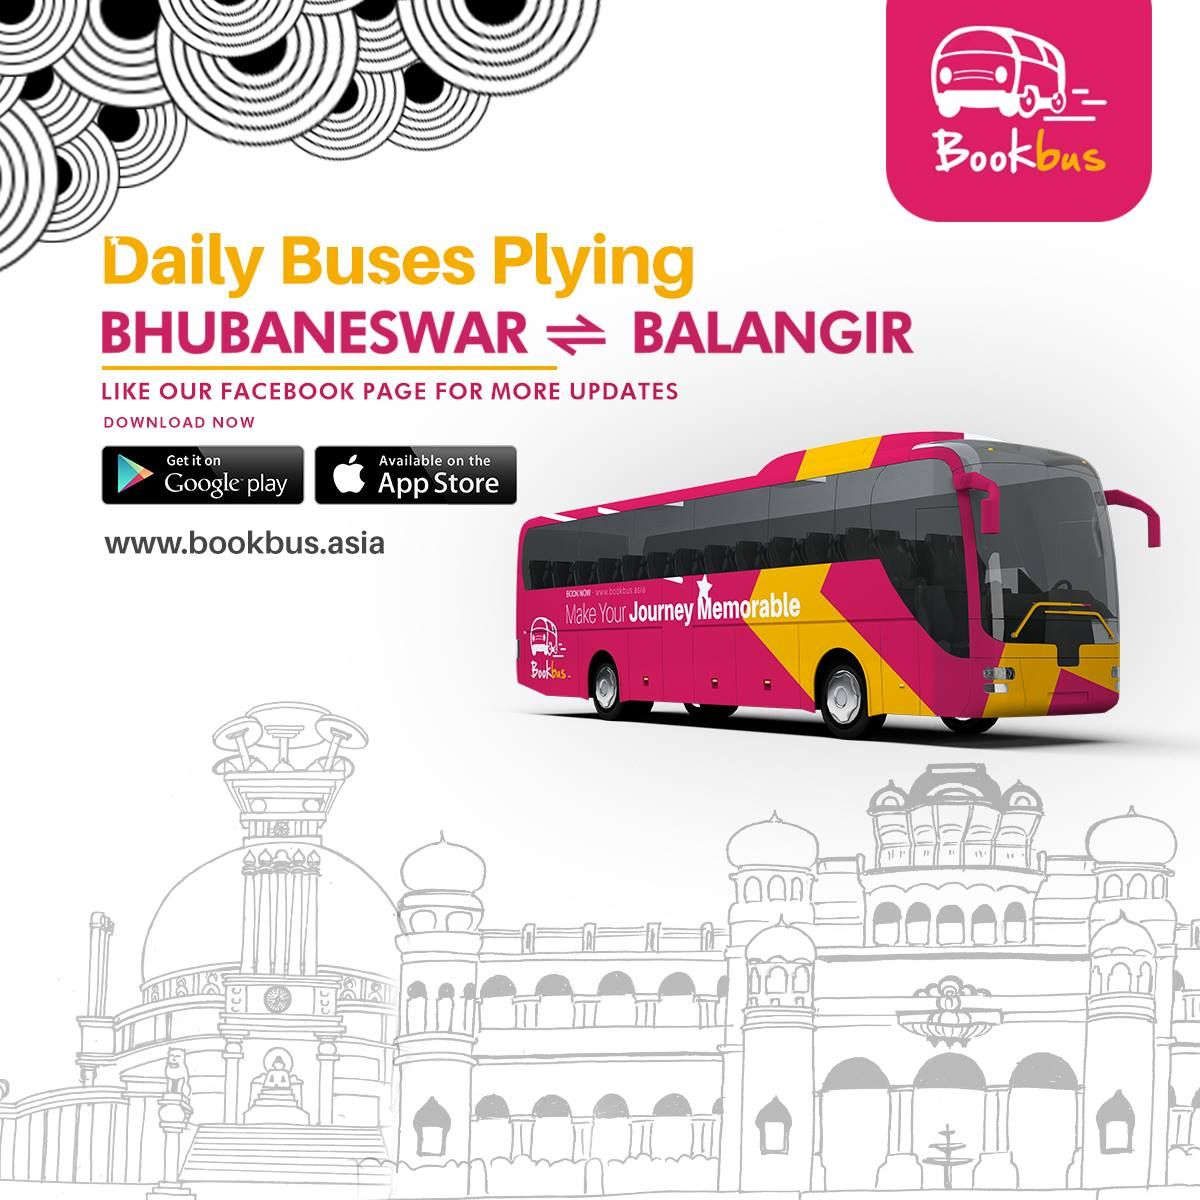 Travellers between Bhubaneswar & Balangir  Now save time by